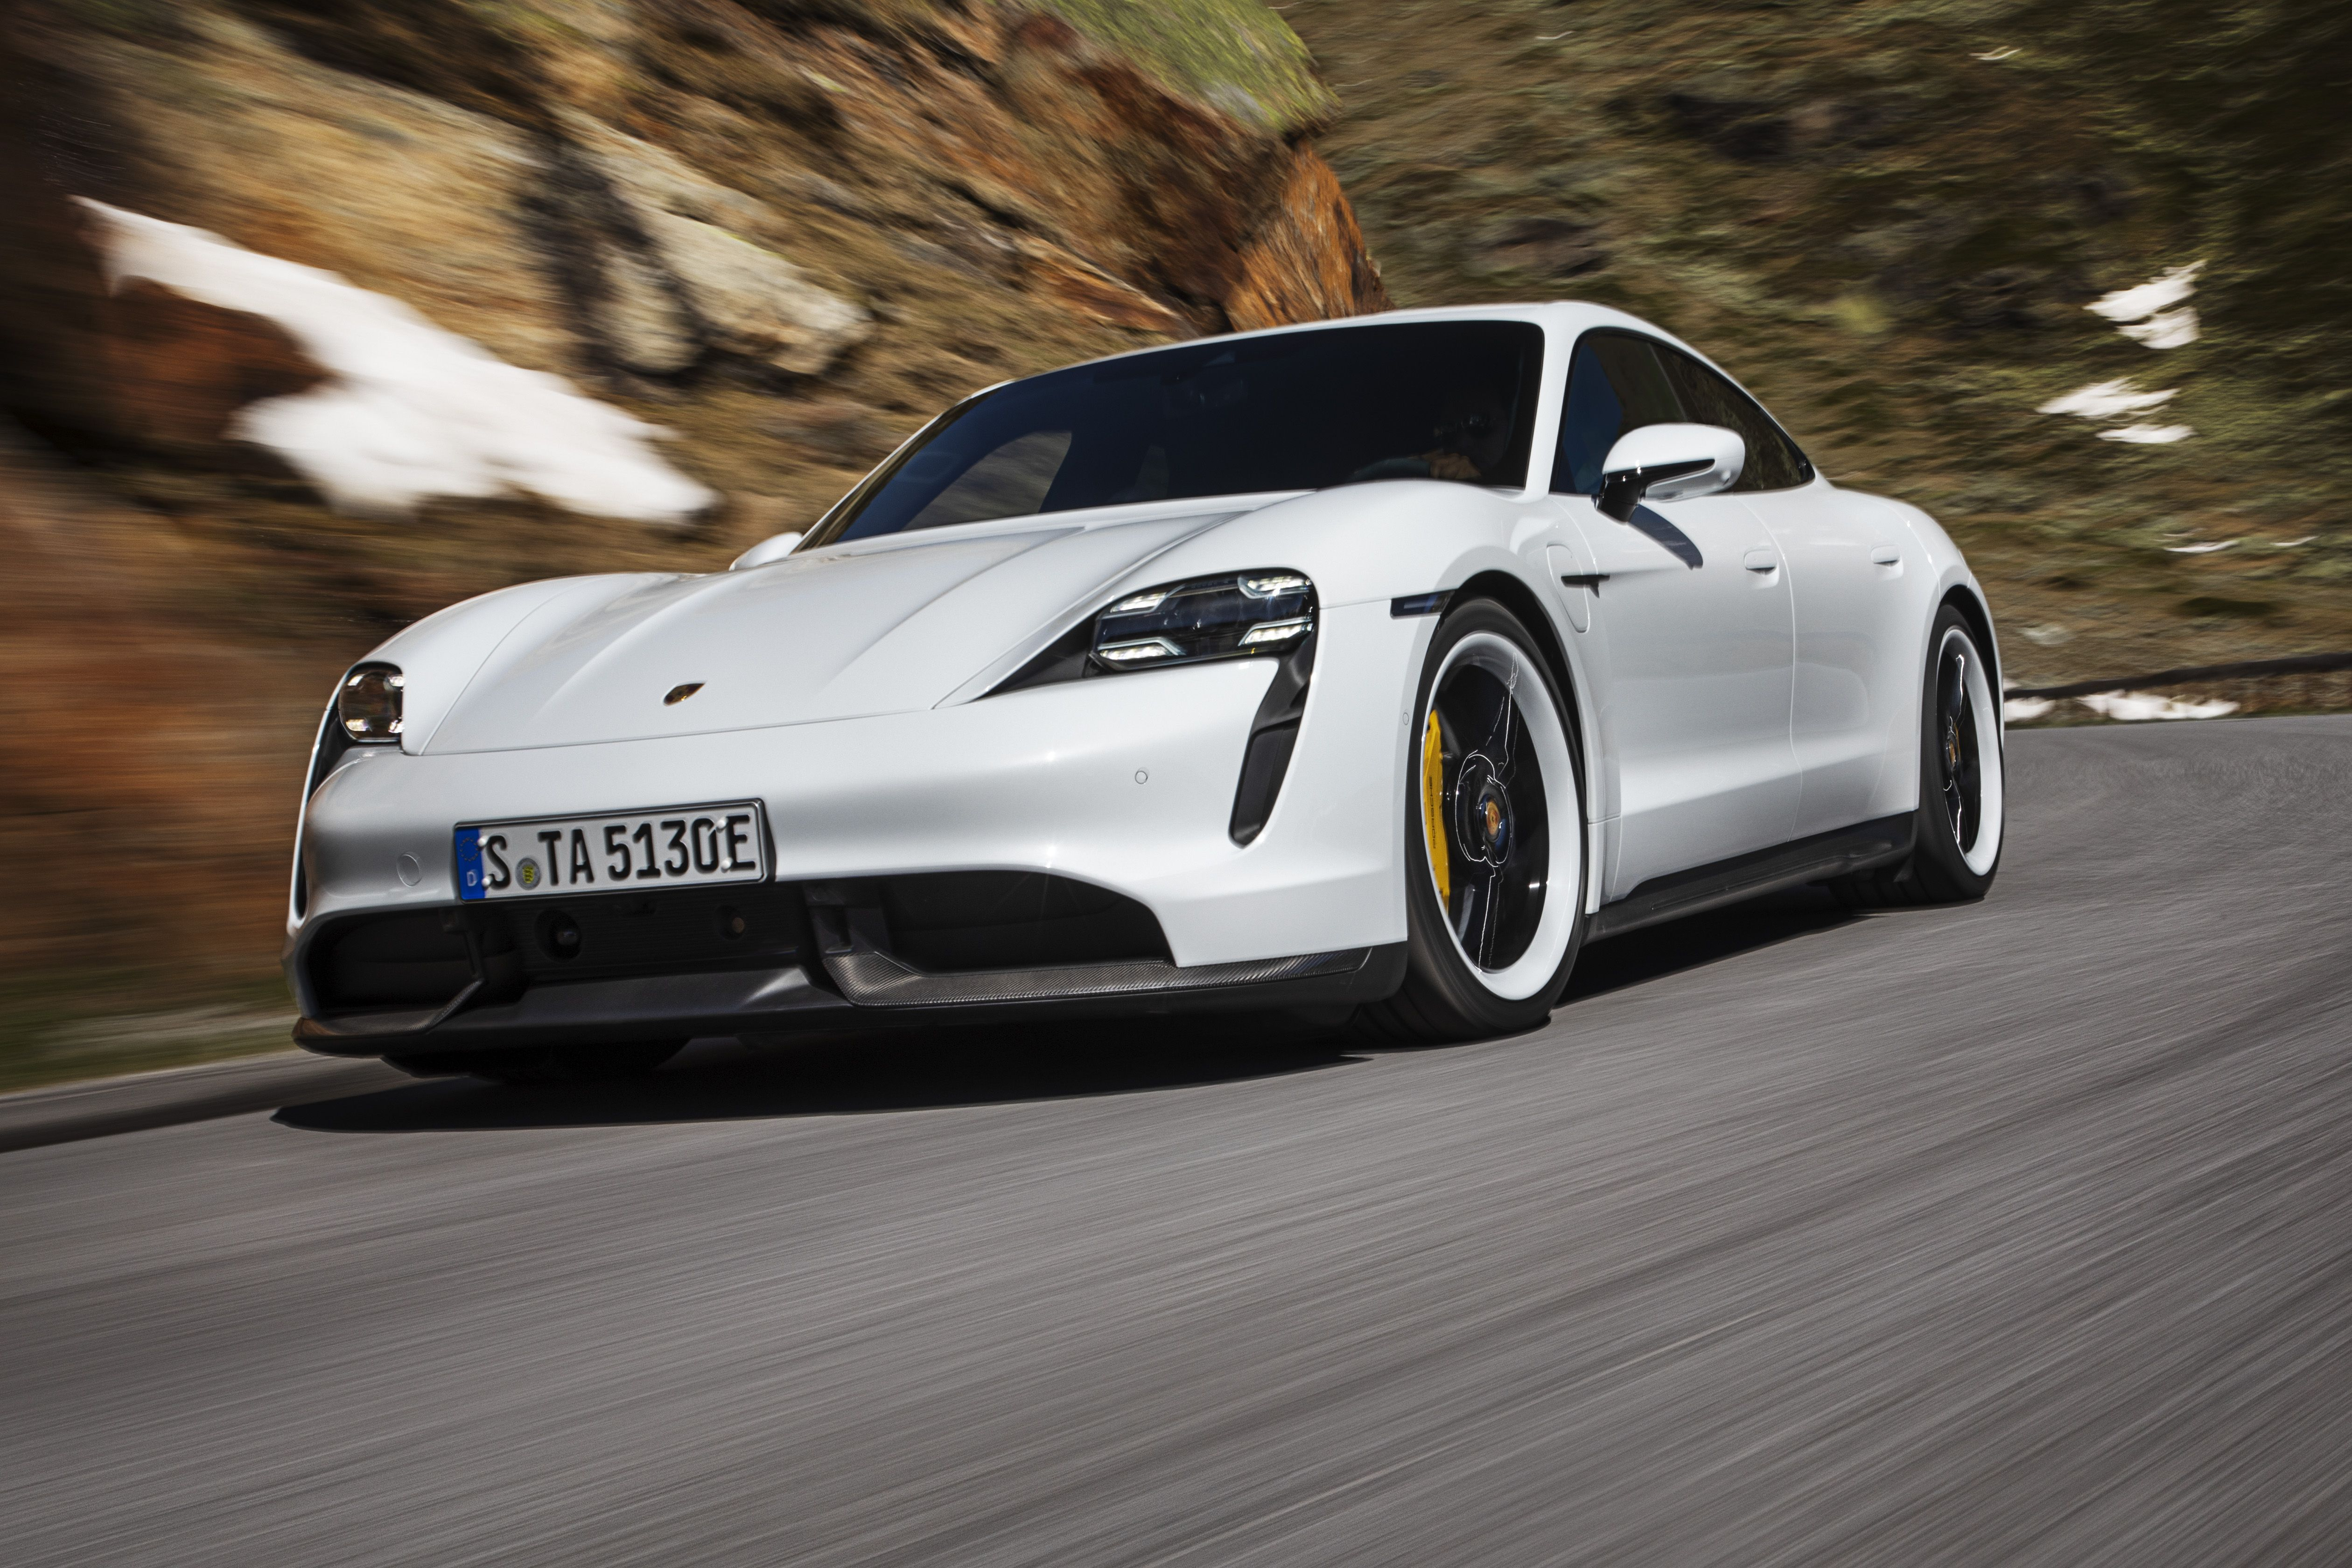 2020 Porsche Taycan Turbo S Revealed With Photos, Specs and